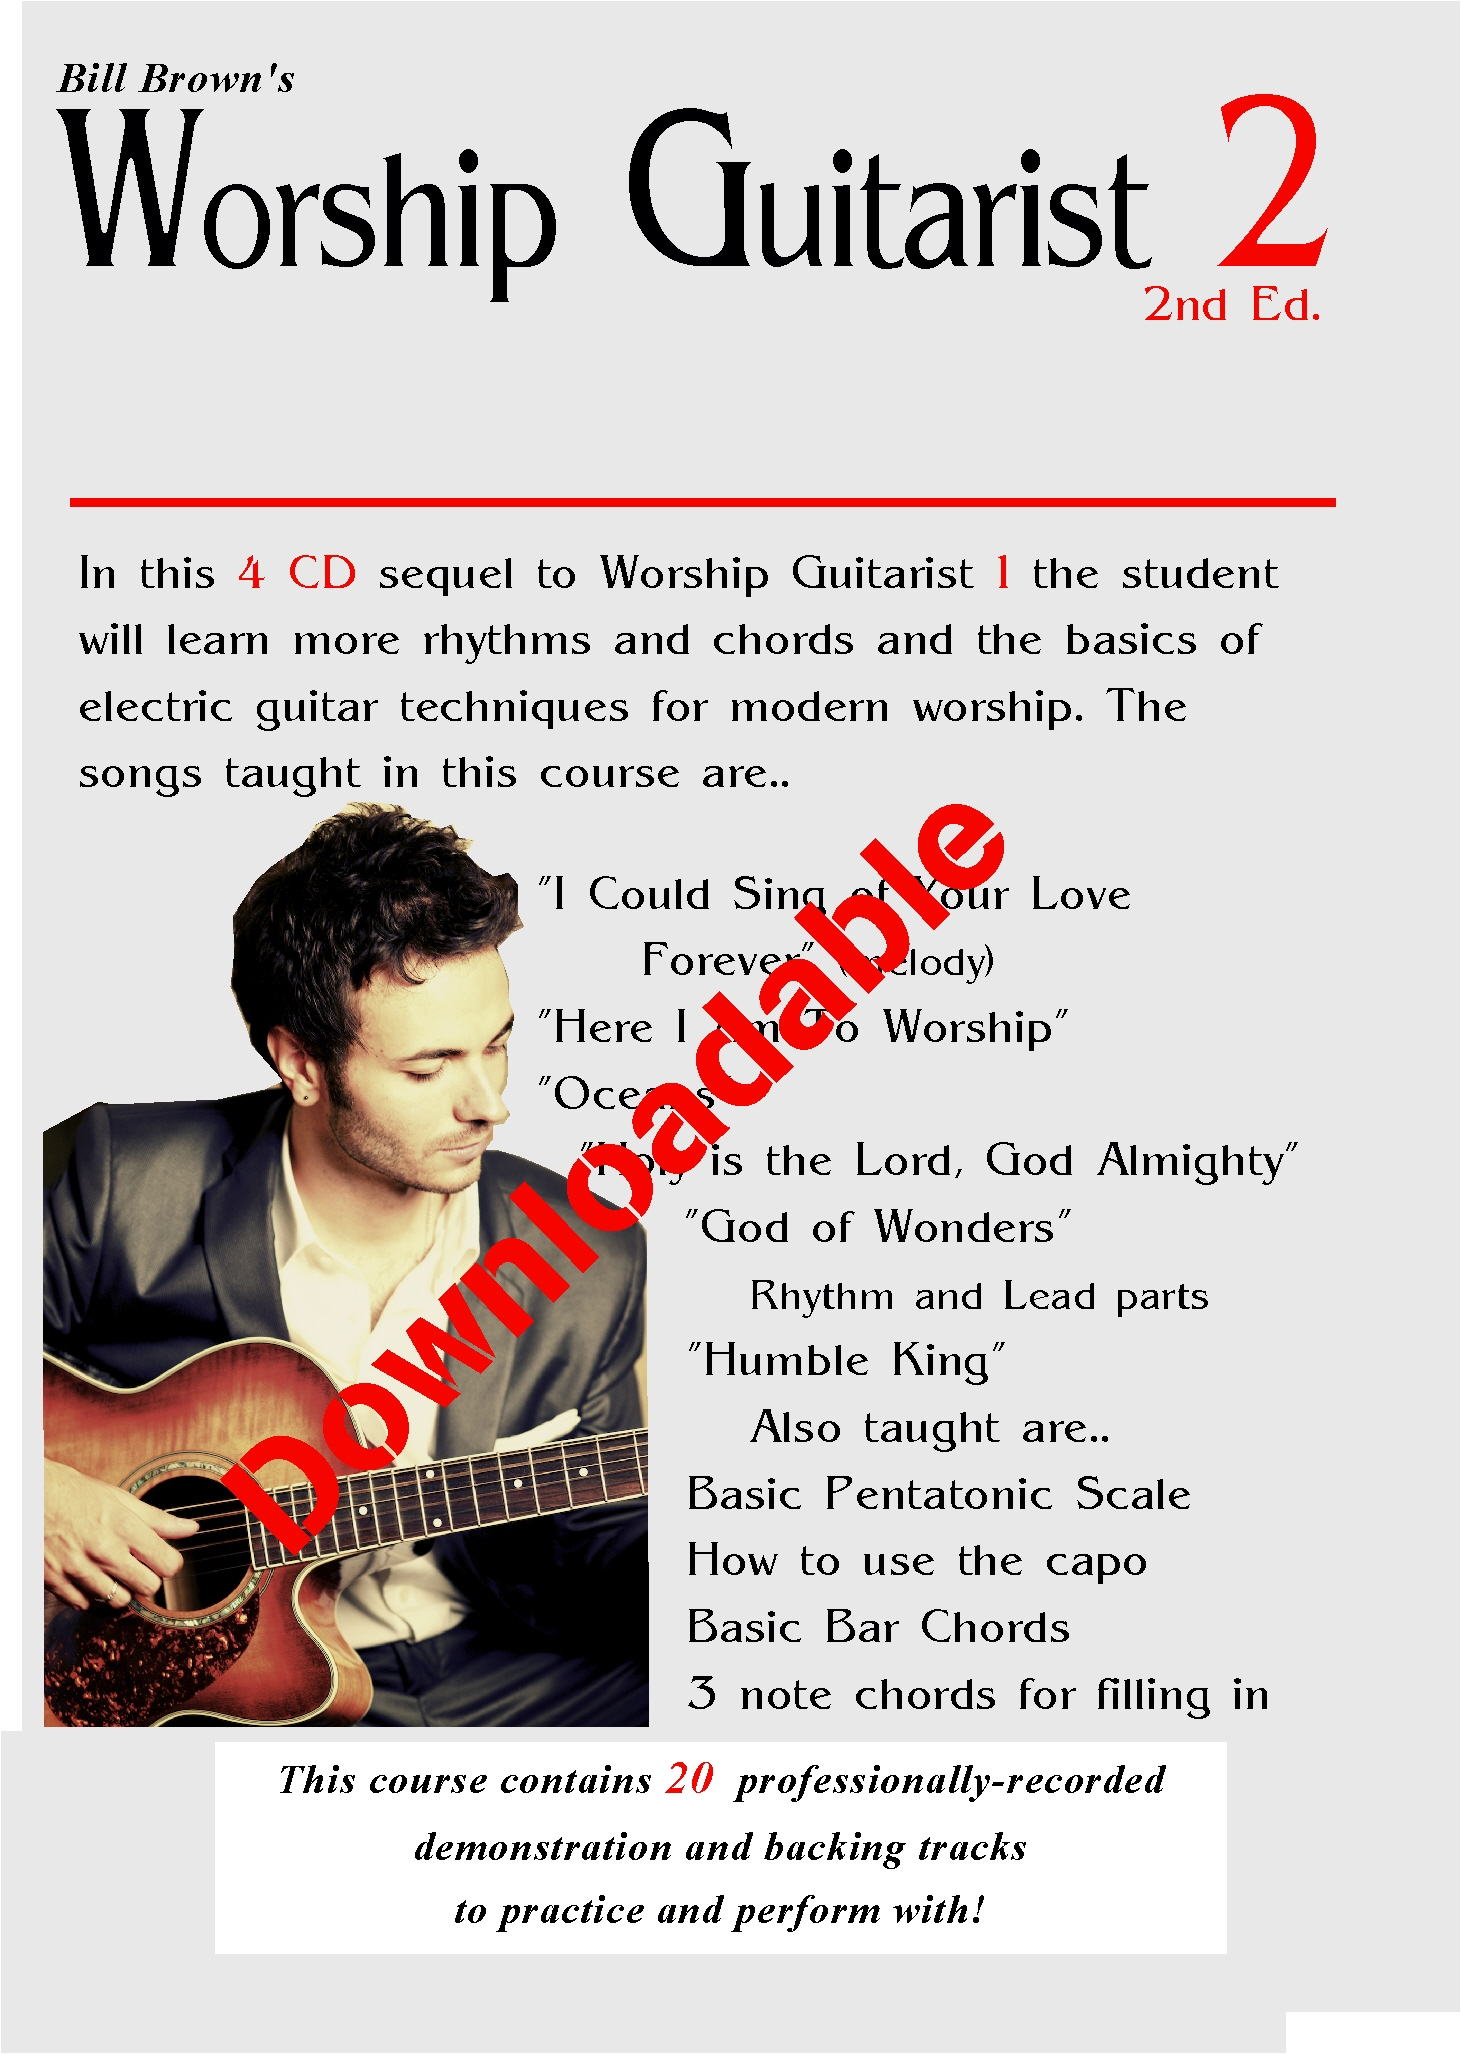 Worship Guitarist 2 2nd Edition (Downloadable)